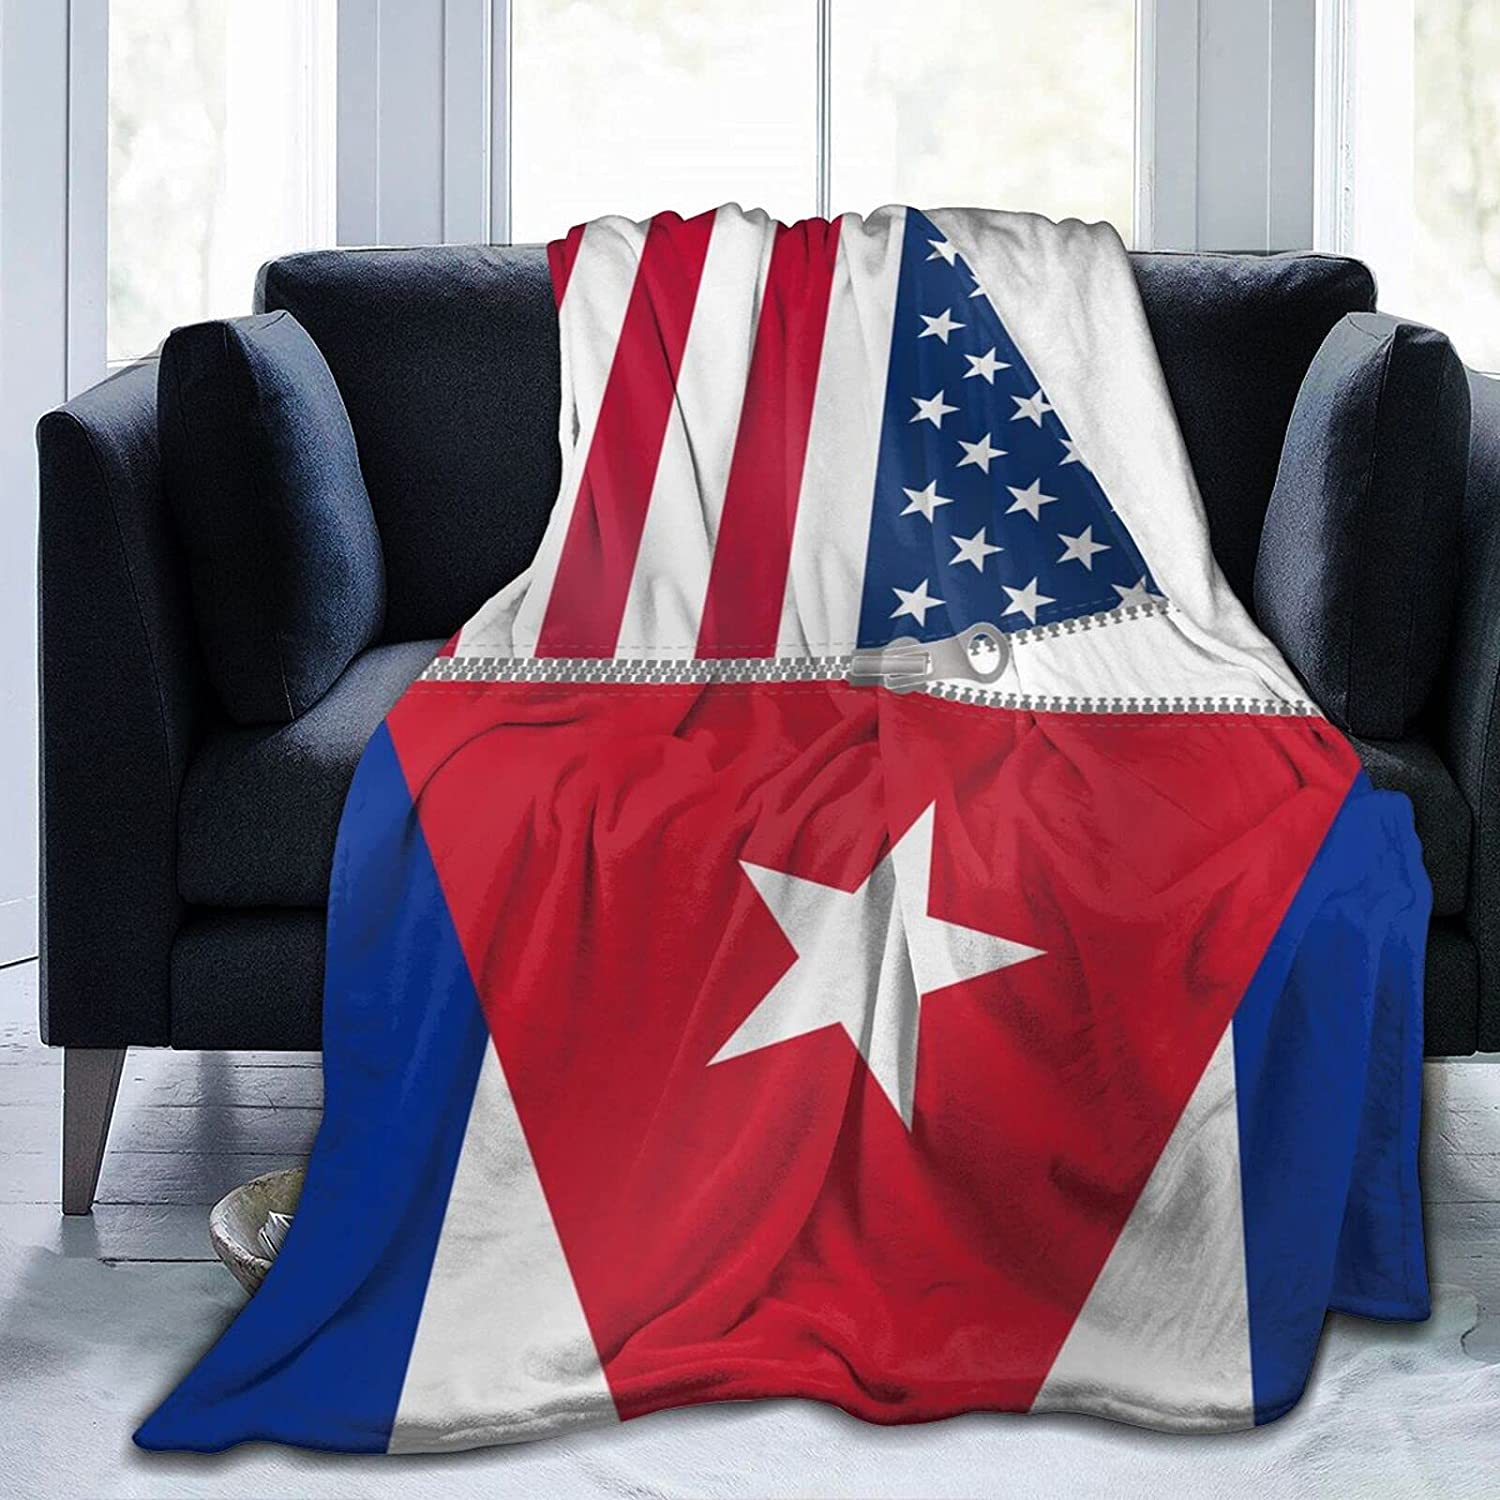 American Flag and Chicago Mall Cuban Popular overseas Blanket Comfortable Smoot Separated